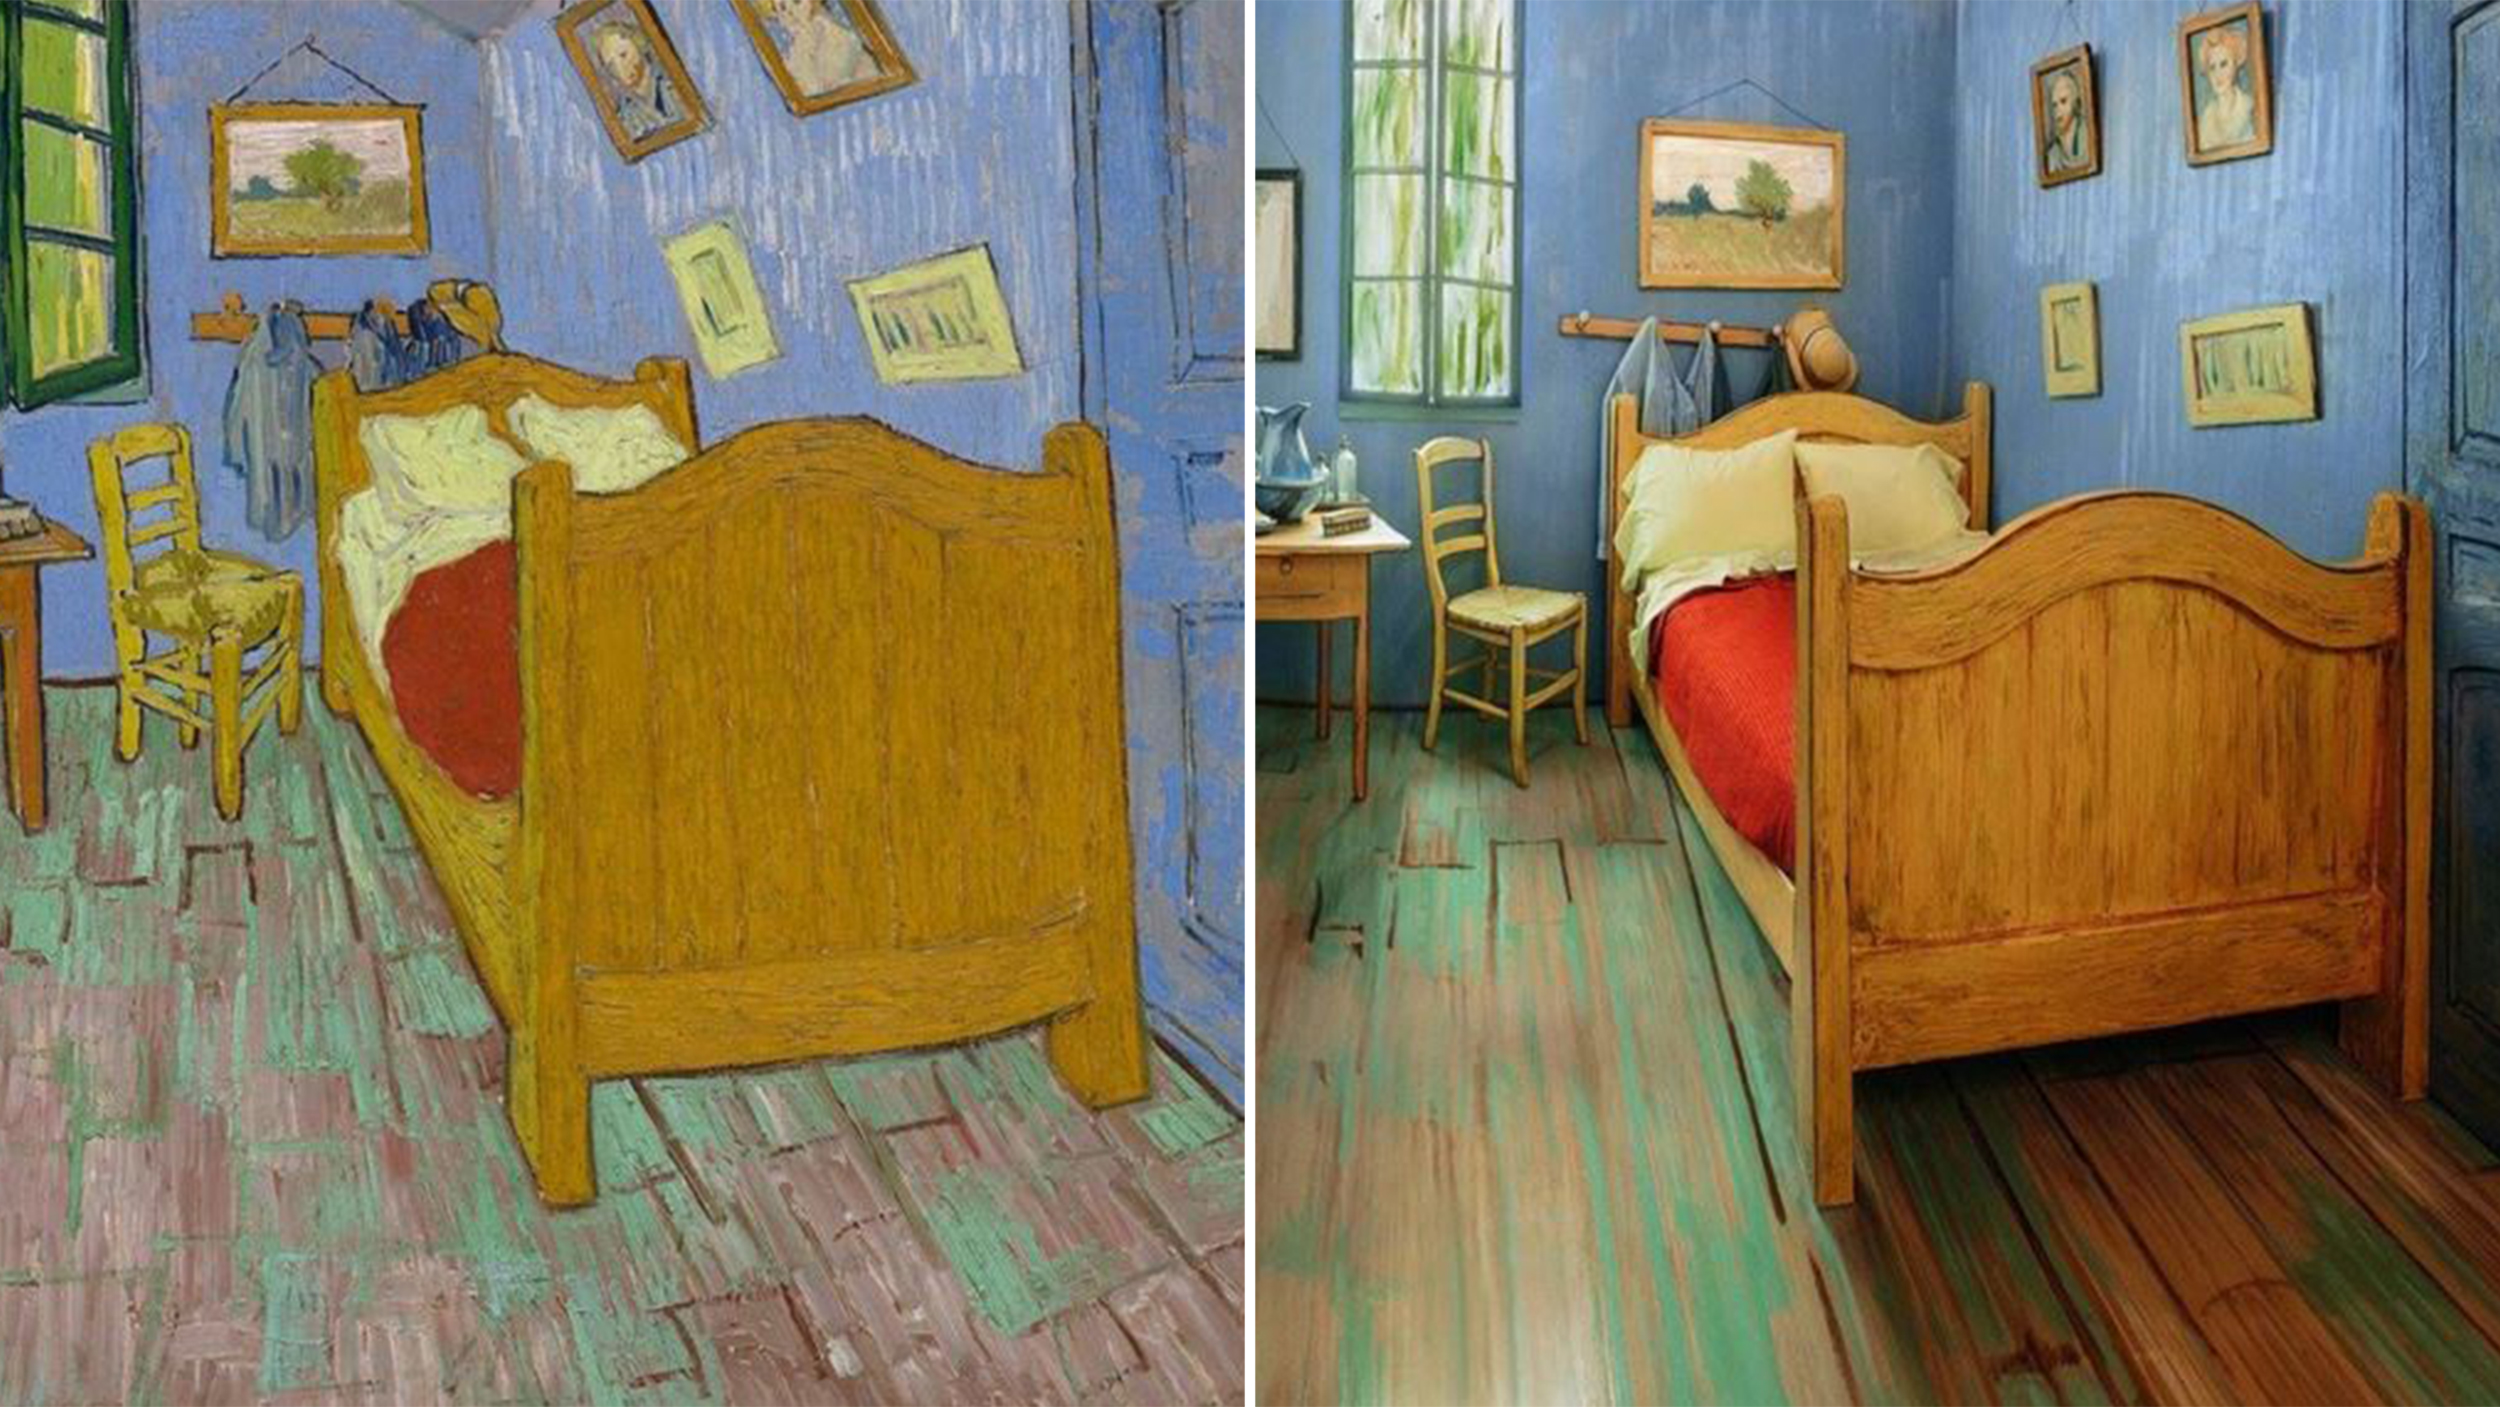 the art institute of chicago recreates van gogh's 'bedroom' and